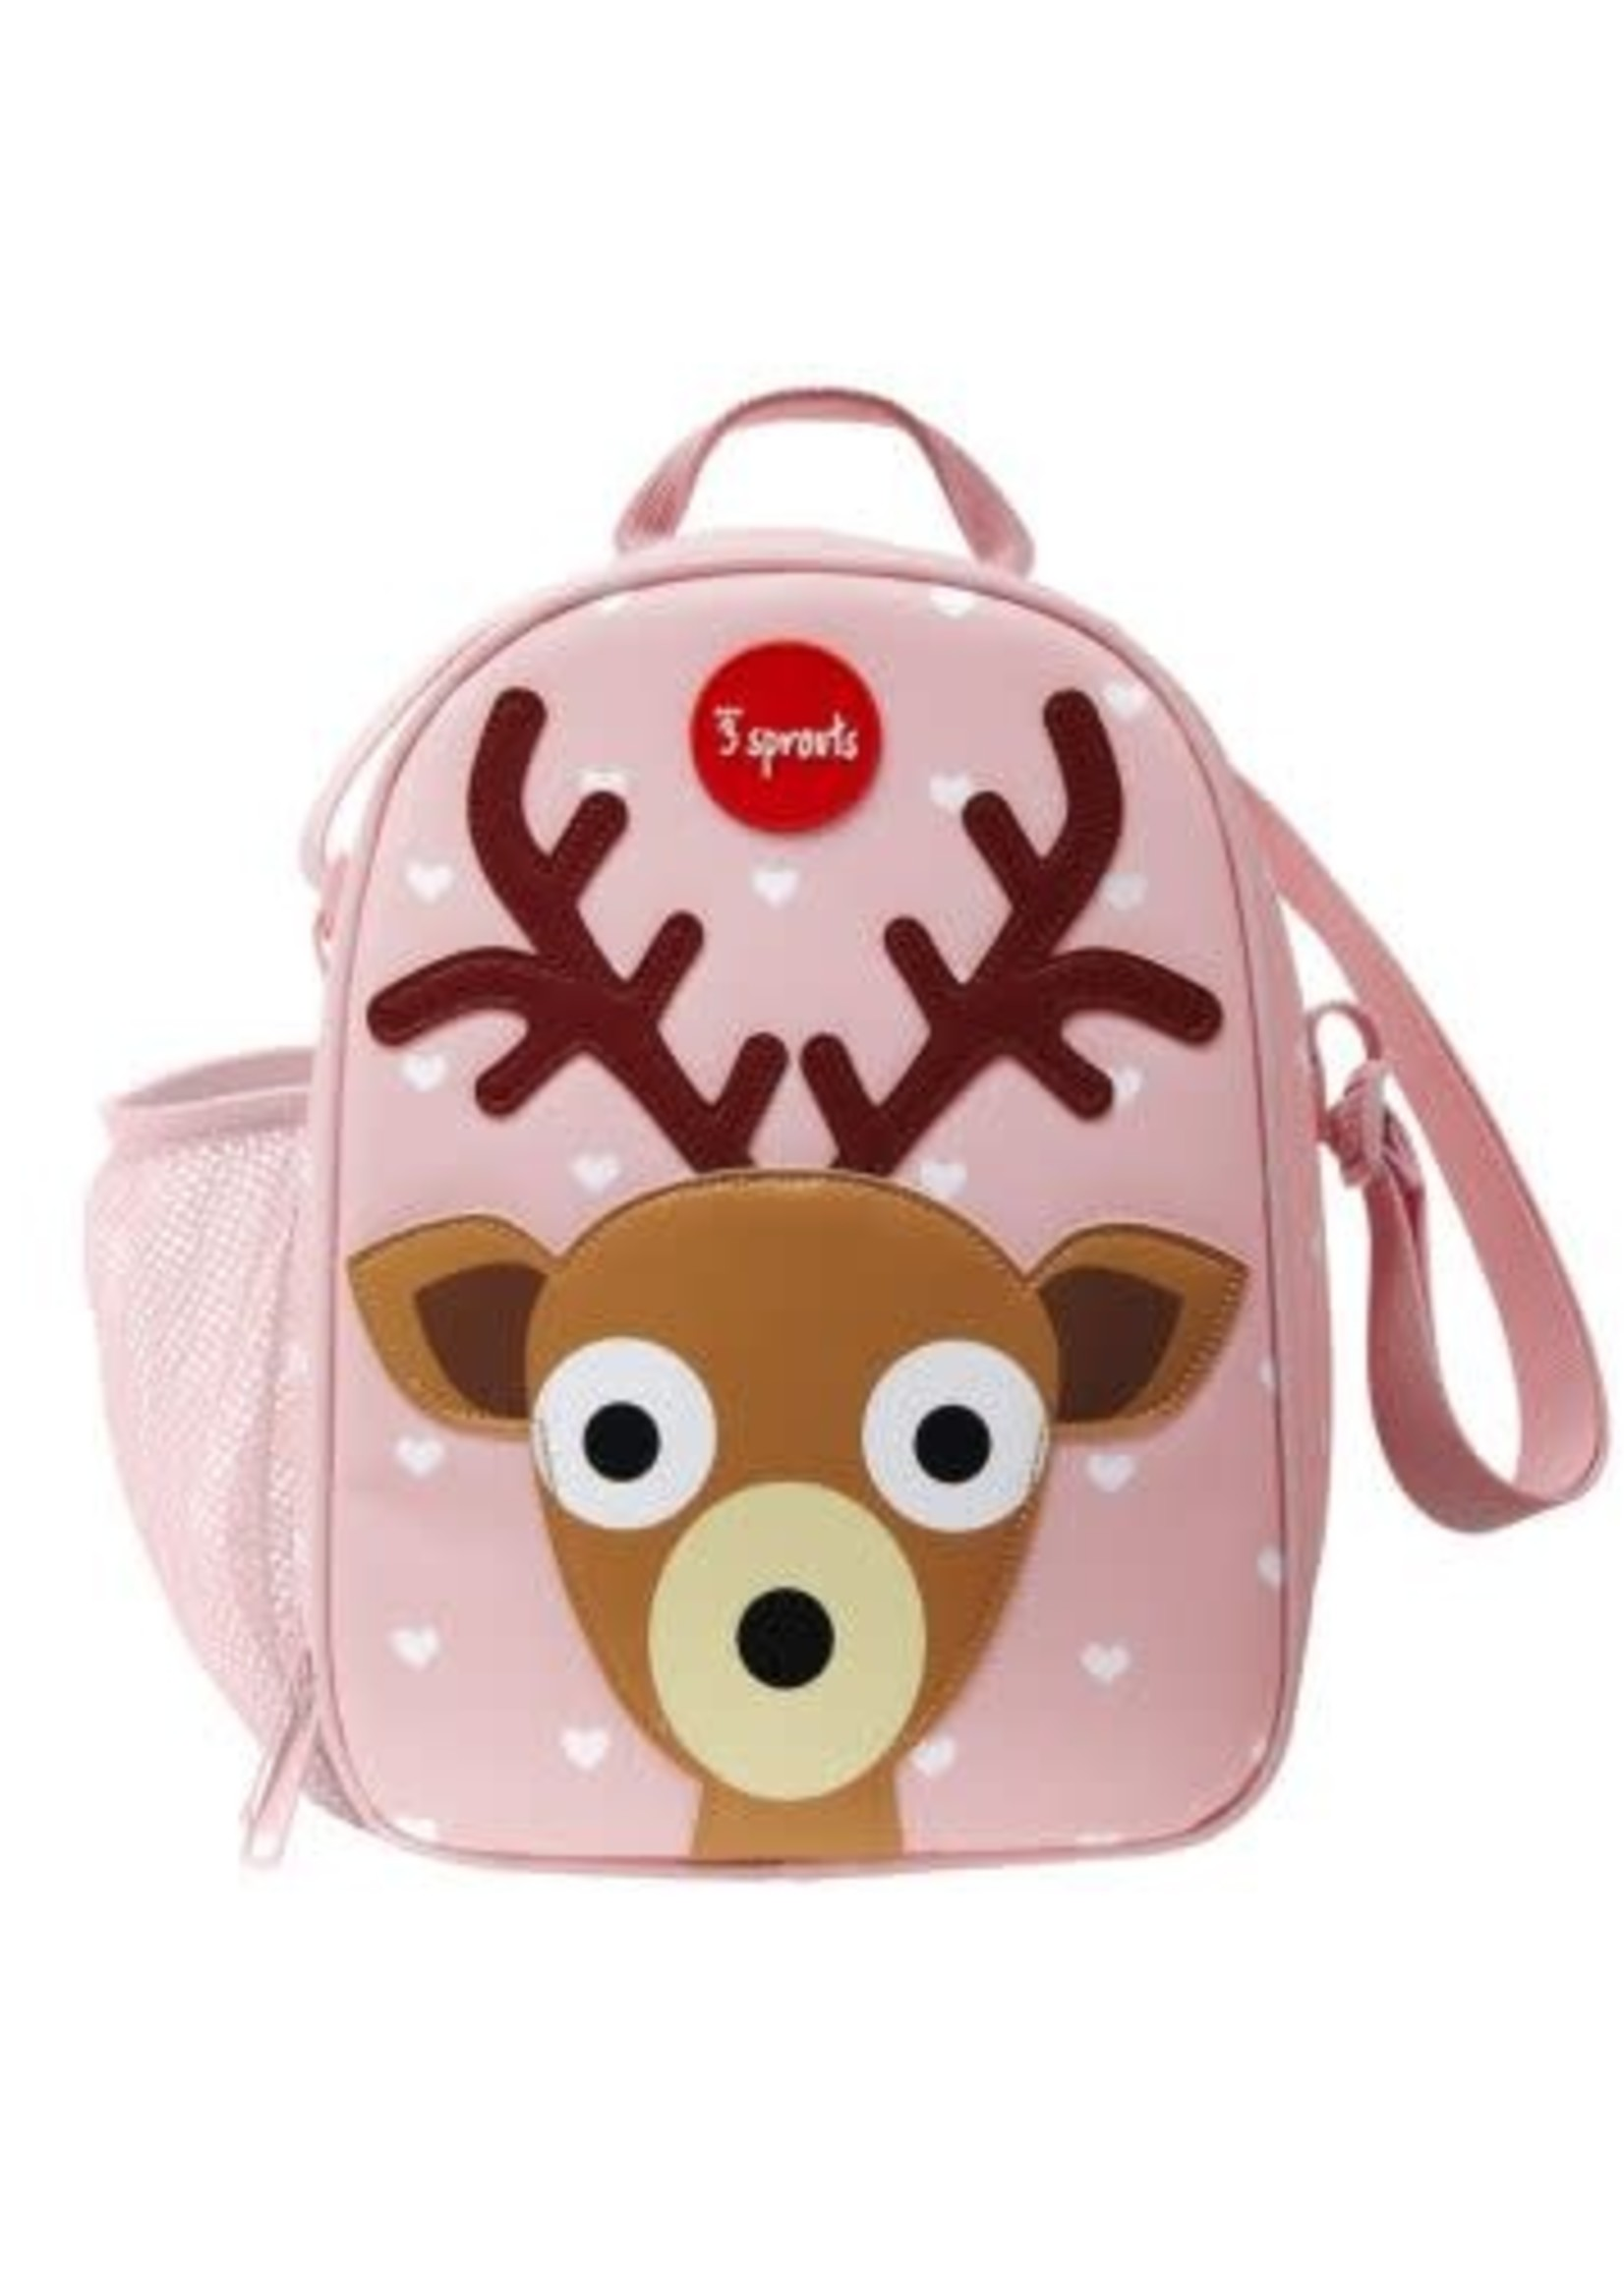 3 sprouts Insulated Lunchbag (Deer)